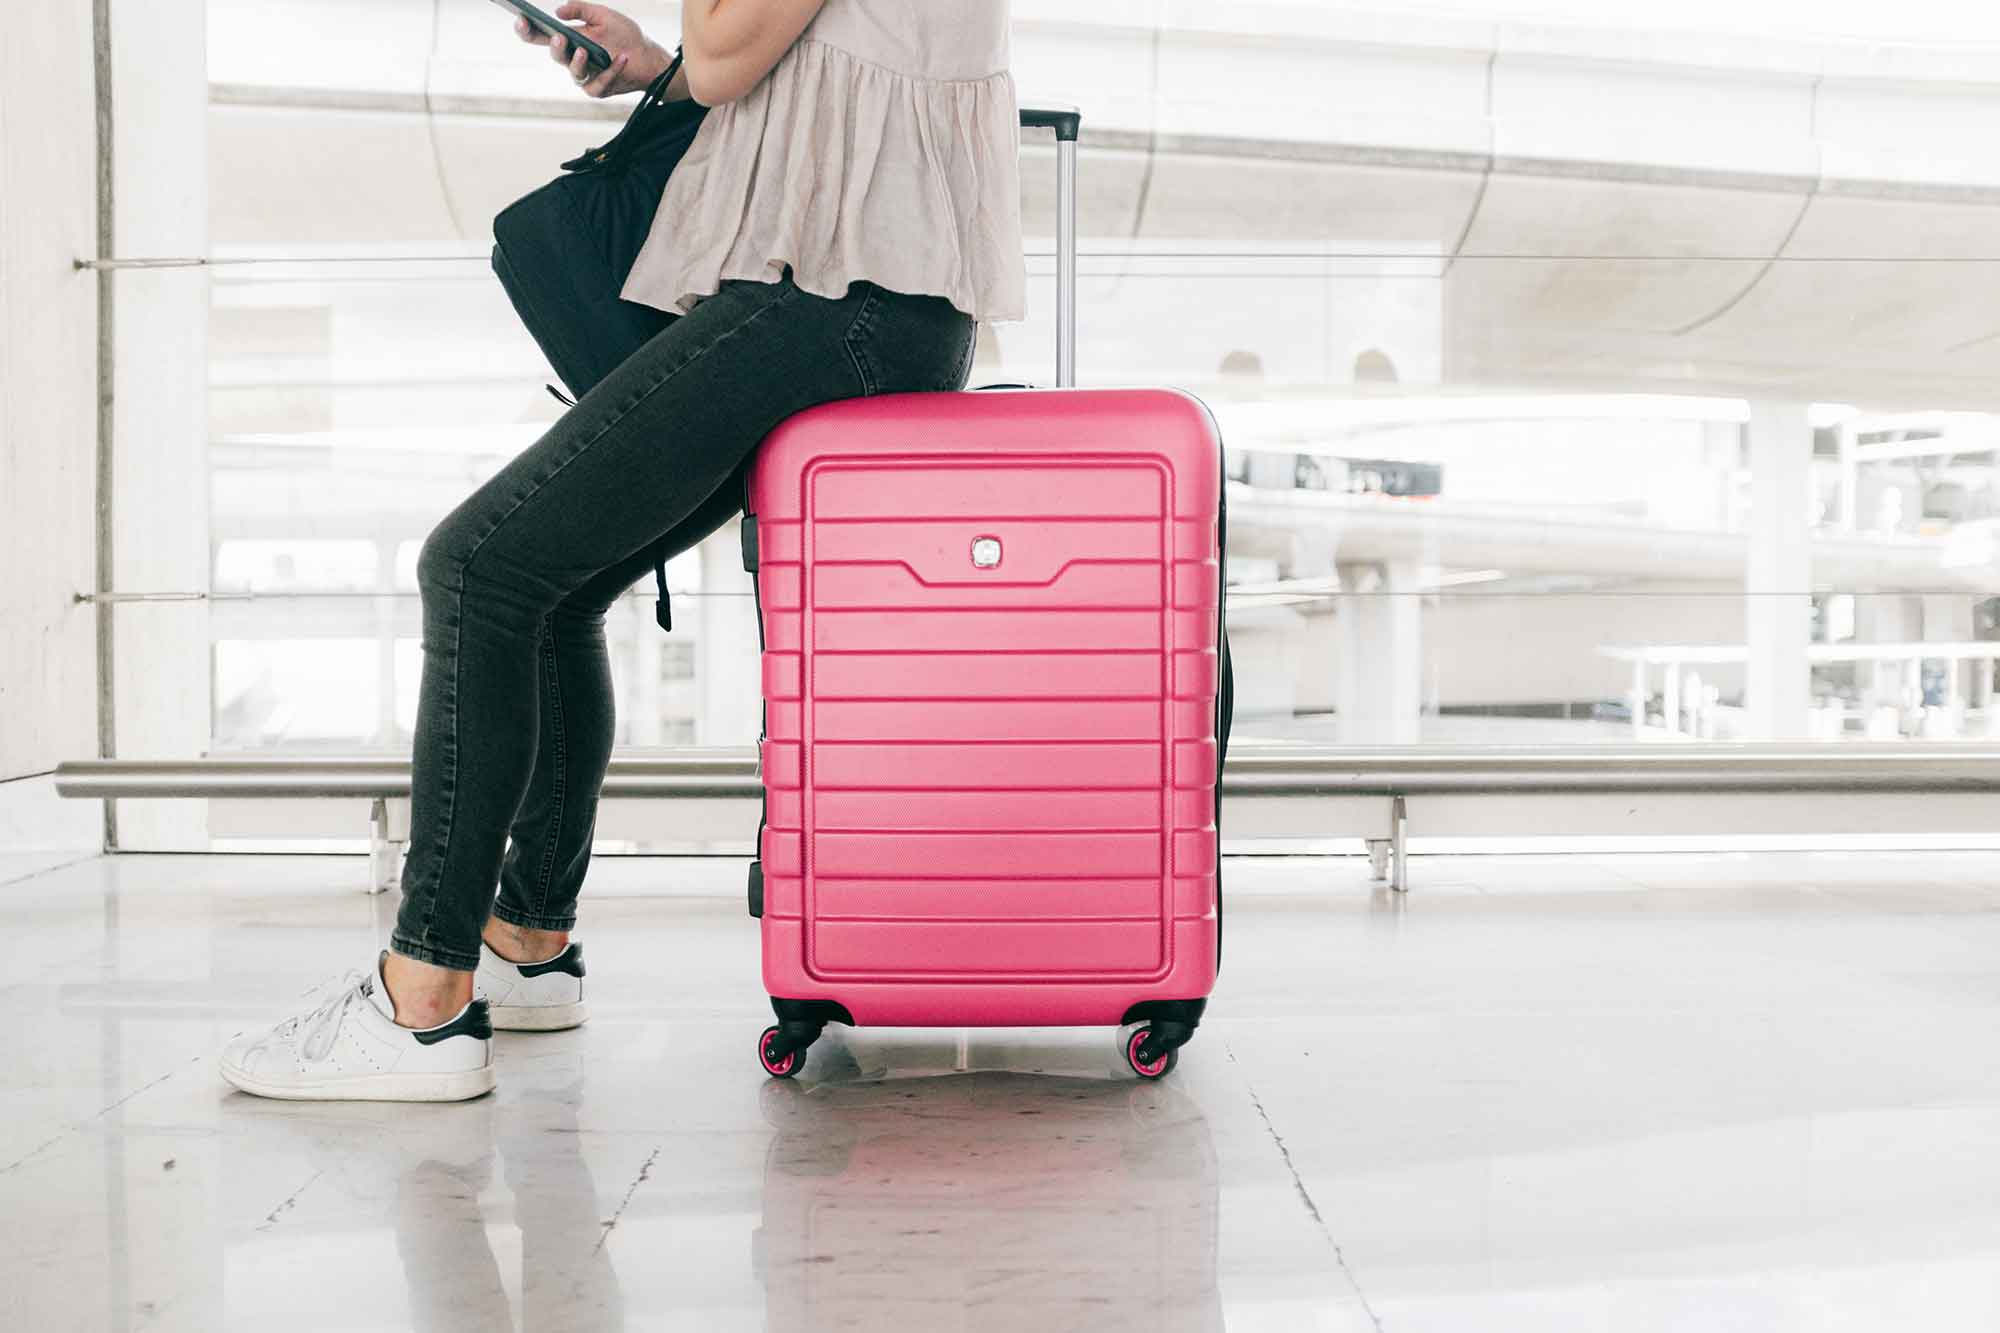 Woman sitting on top of pink luggage